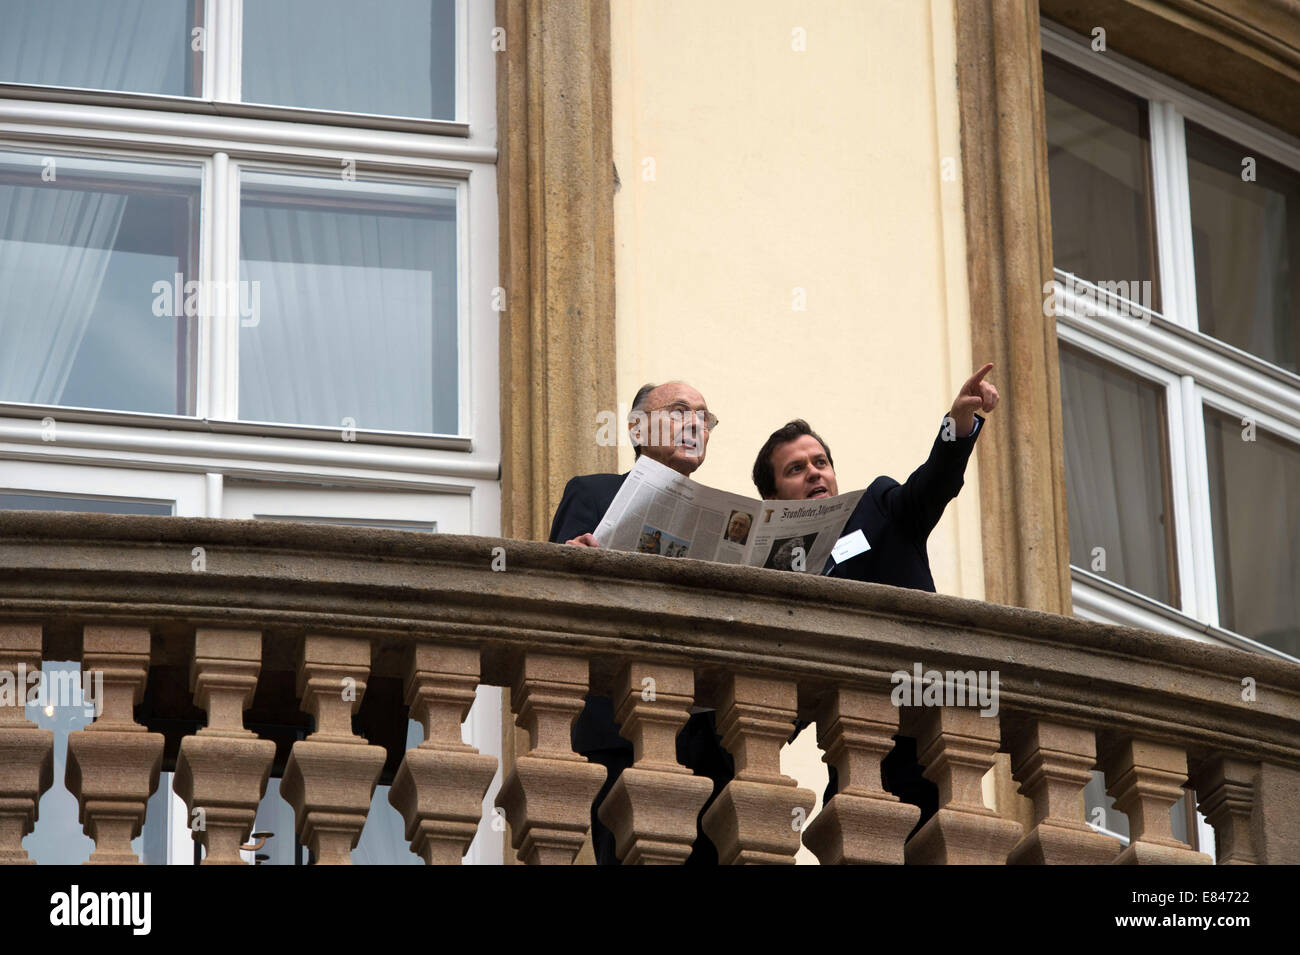 Prague, Czech Republic. 30th Sep, 2014. Former German Foreign Minister Hans-Dietrich Genscher (L) talks to a man Stock Photo